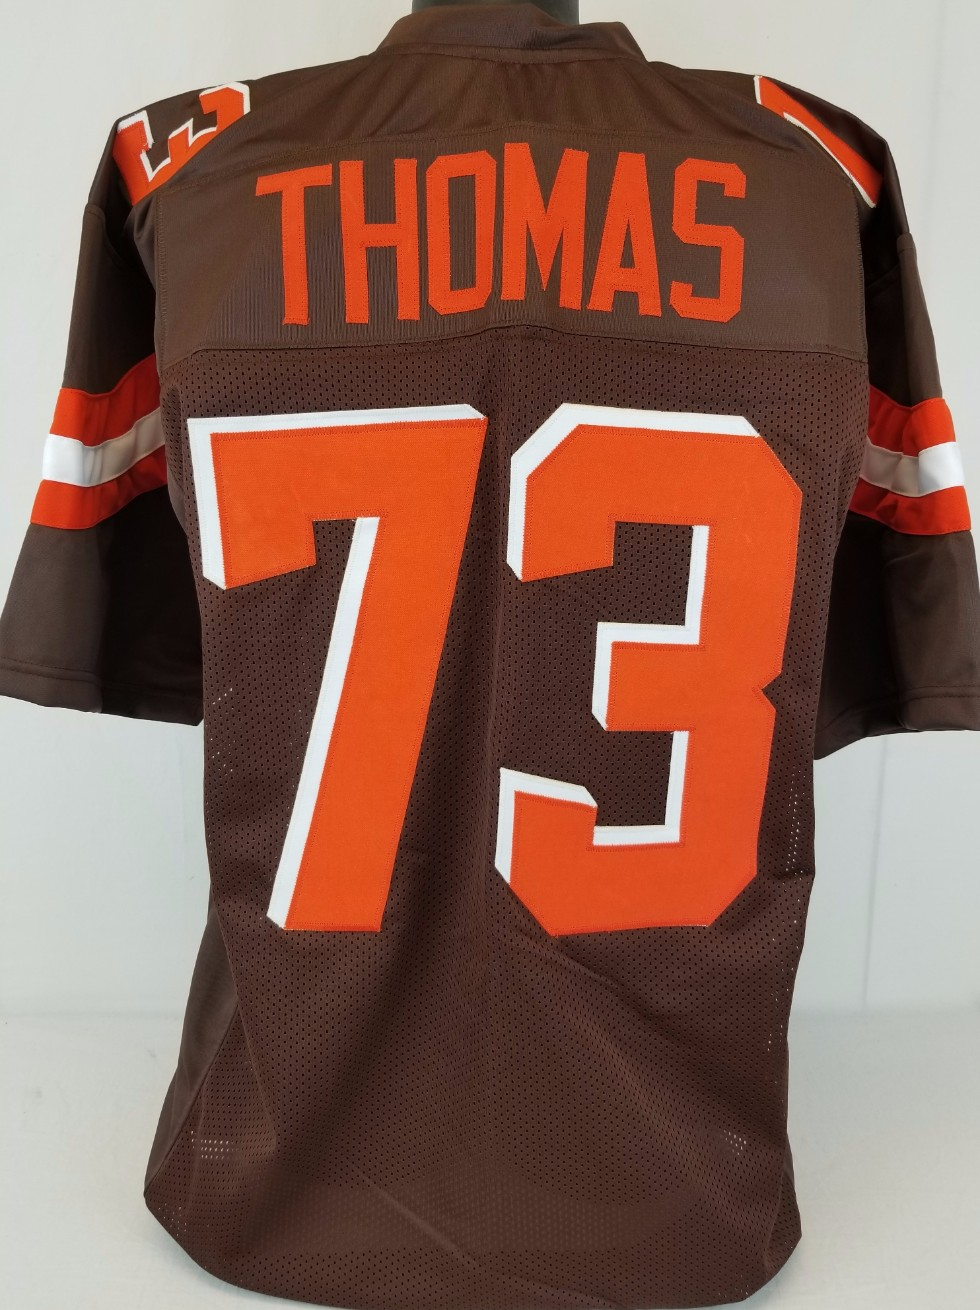 innovative design 7dac9 a69d8 Item Detail - Joe Thomas Cleveland Browns Custom Home Jersey ...